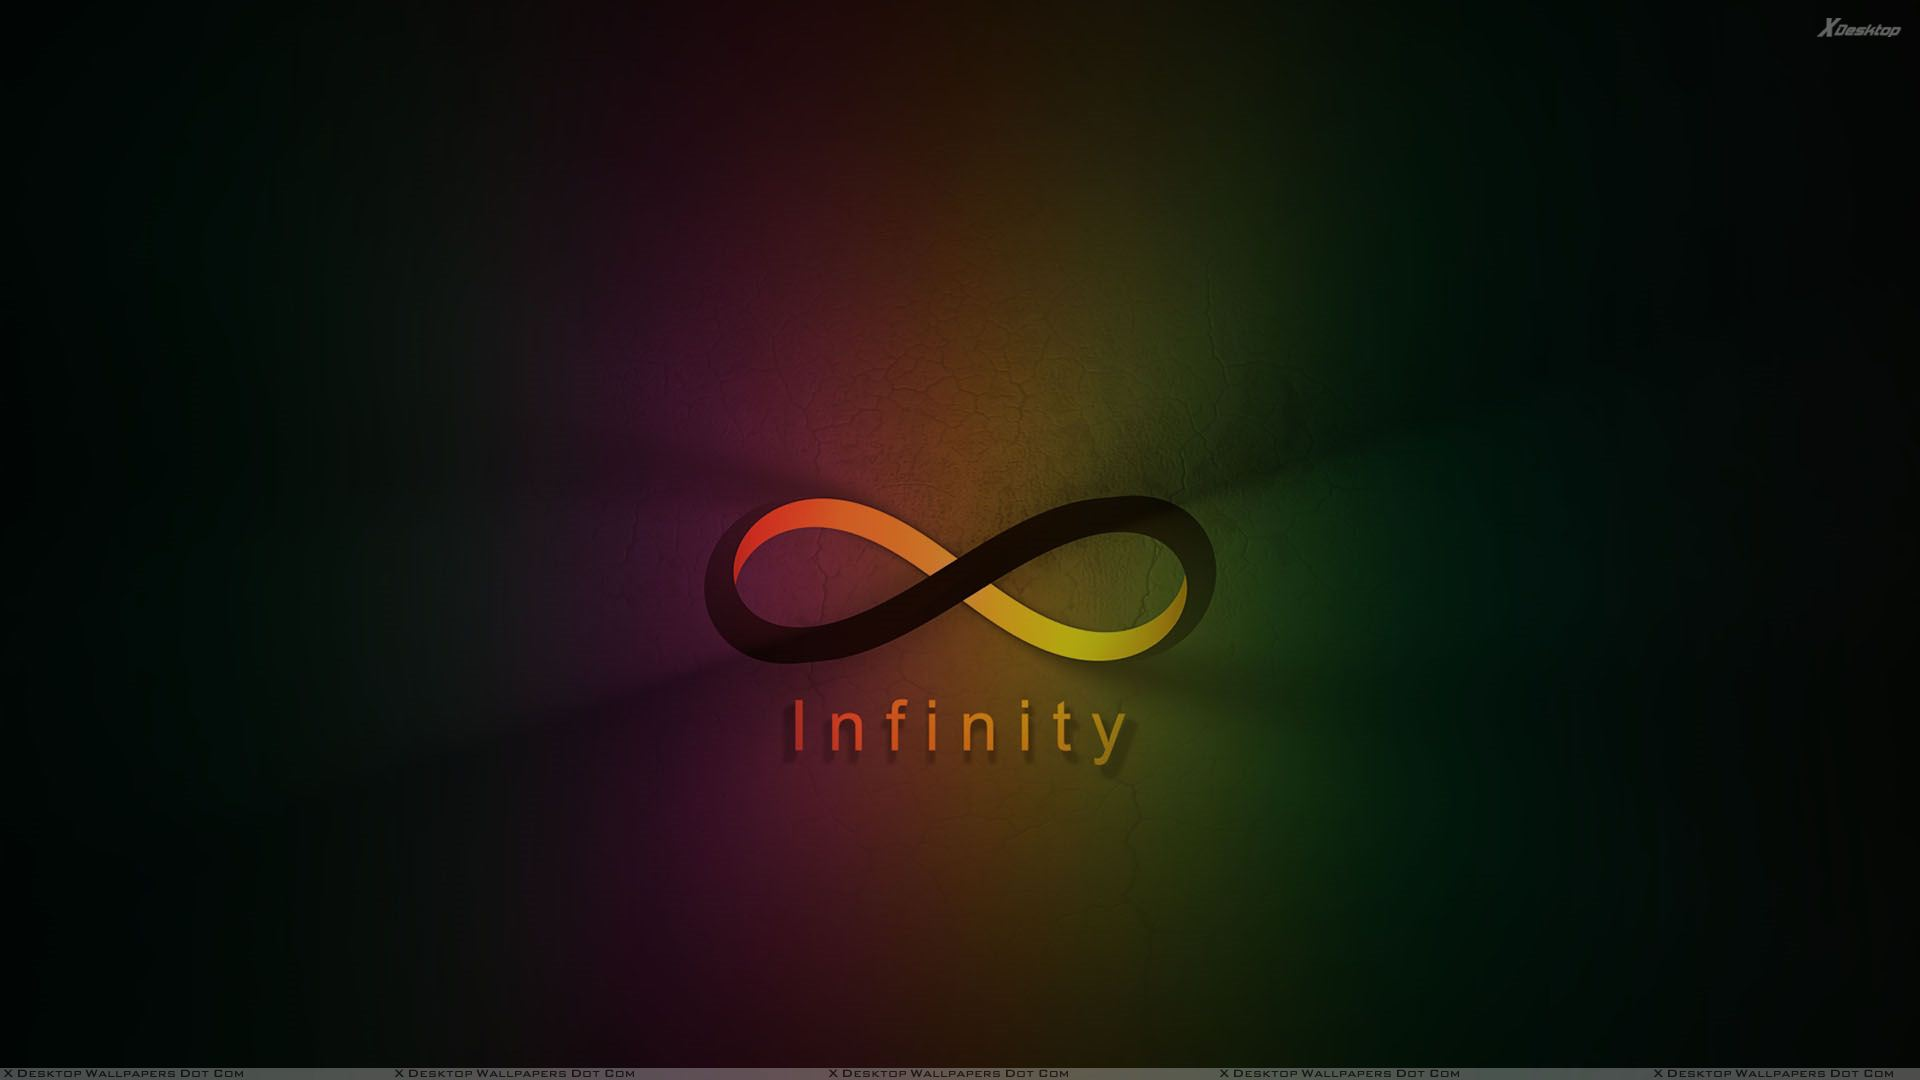 Infinity Wallpapers Wallpapersafari